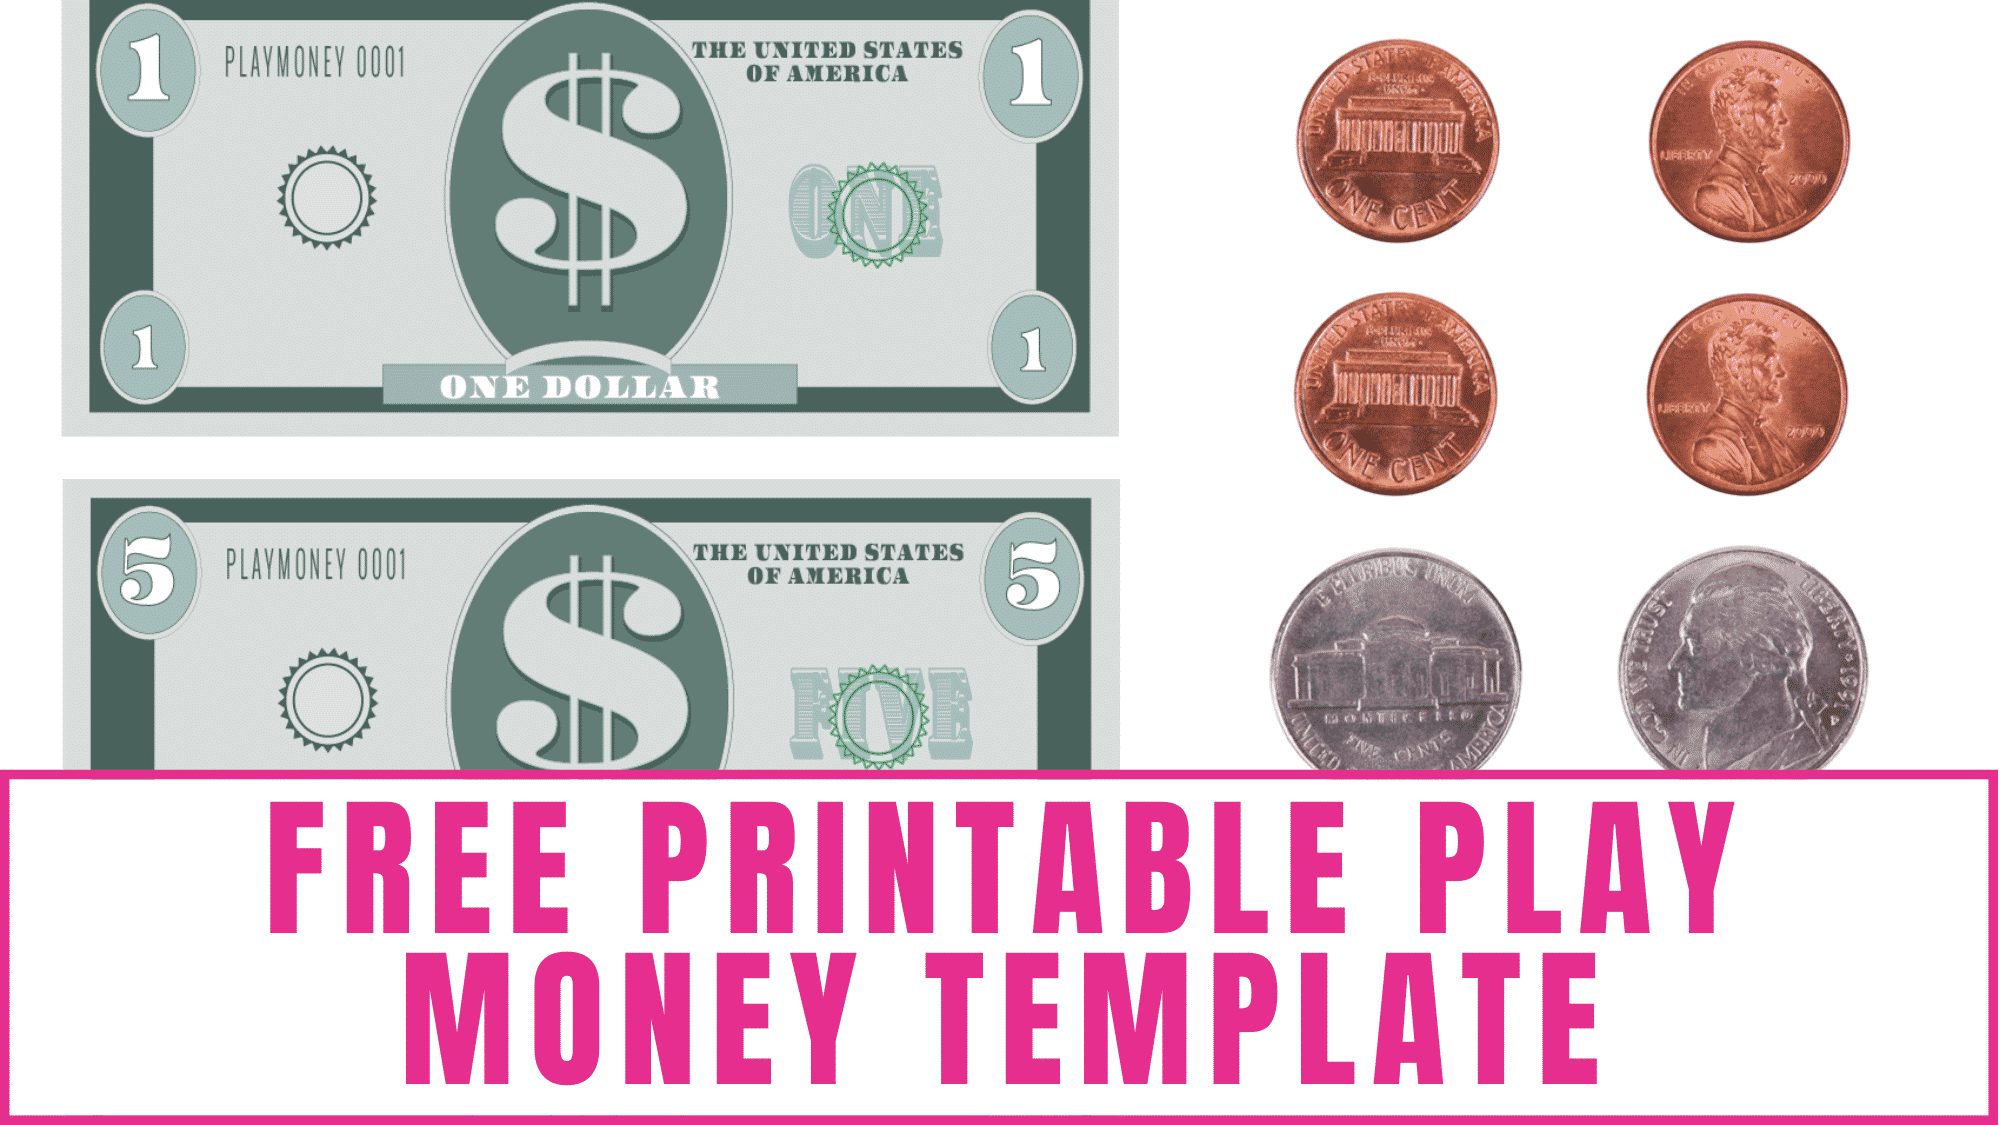 Teach kids about money management and budgeting with this free printable play money template.